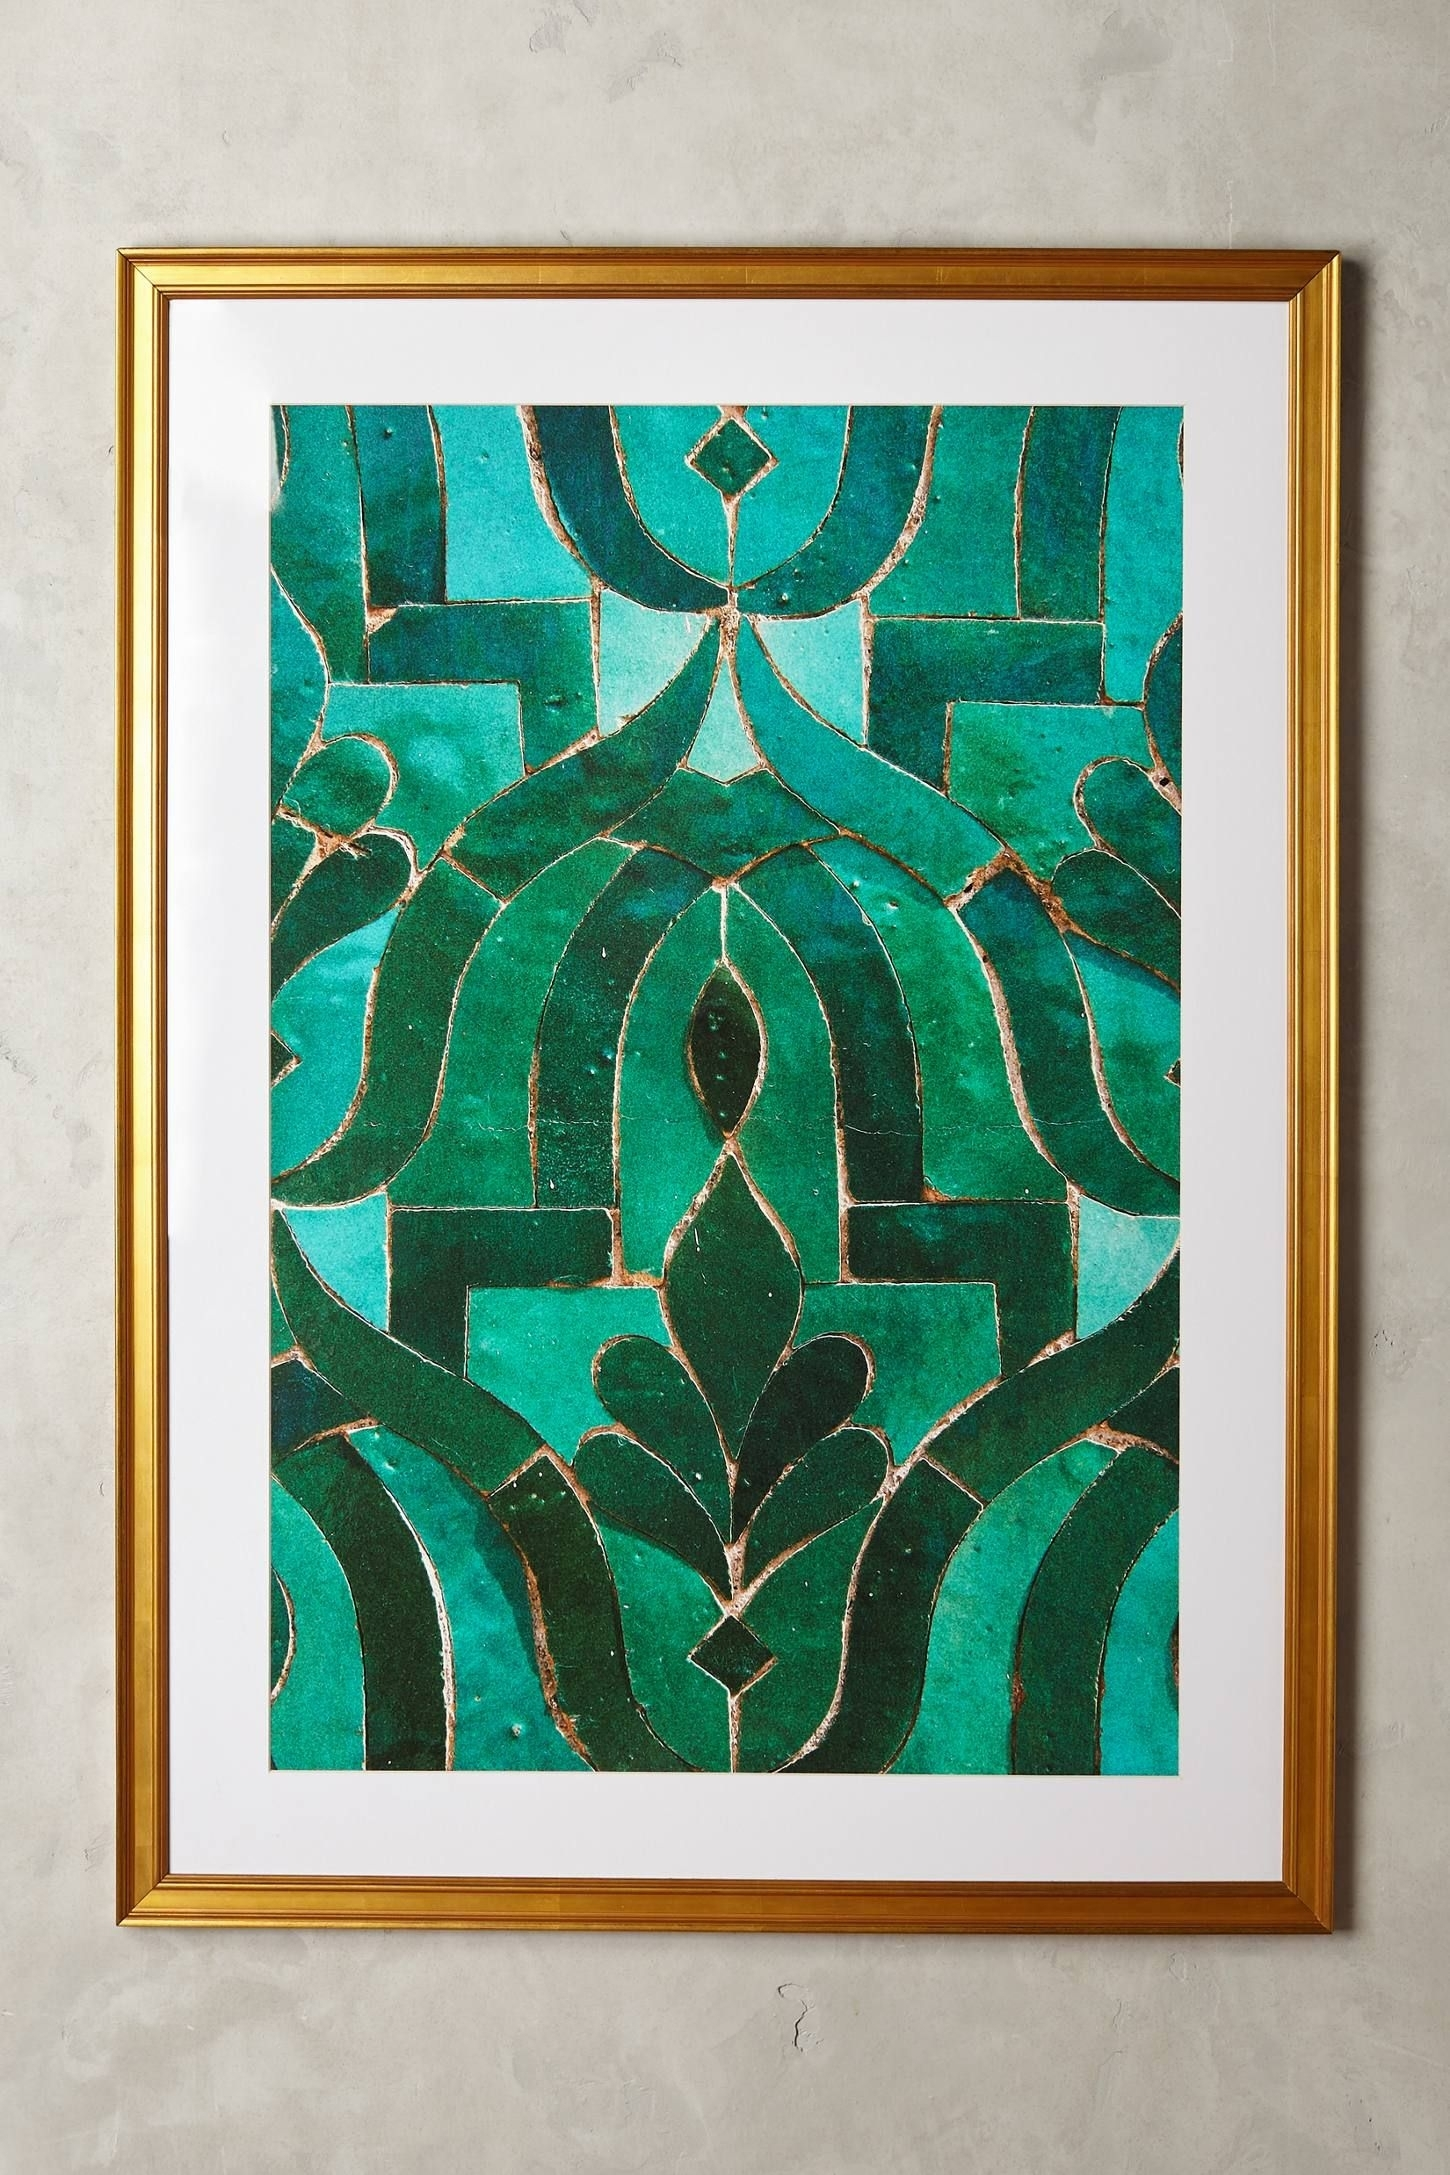 Moroccan Tile Wall Art | Home & Design Love | Pinterest | Moroccan Intended For Current Moroccan Wall Art (View 13 of 20)